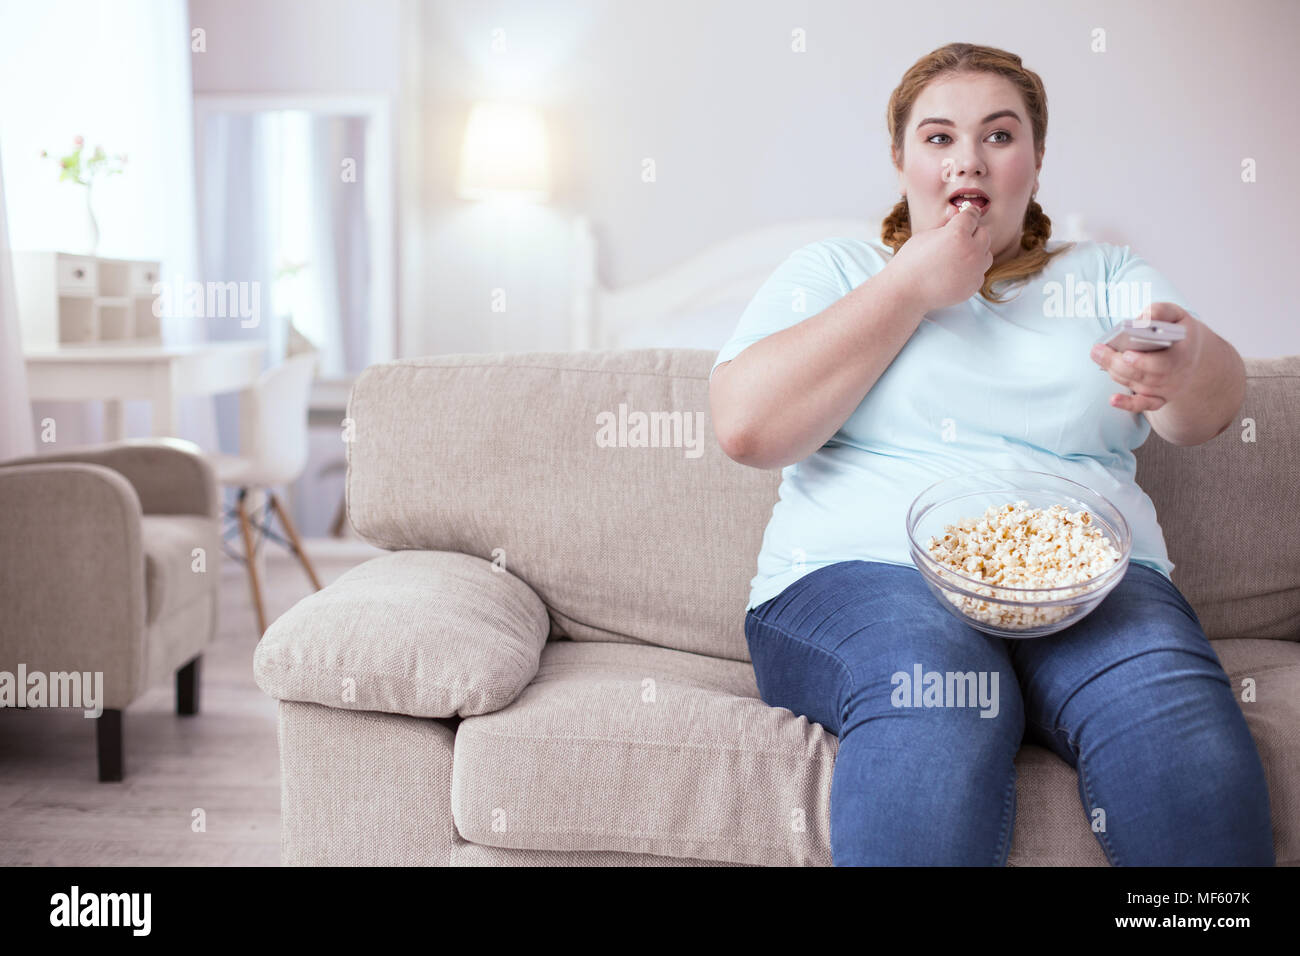 Thoughtful plump woman watching television - Stock Image